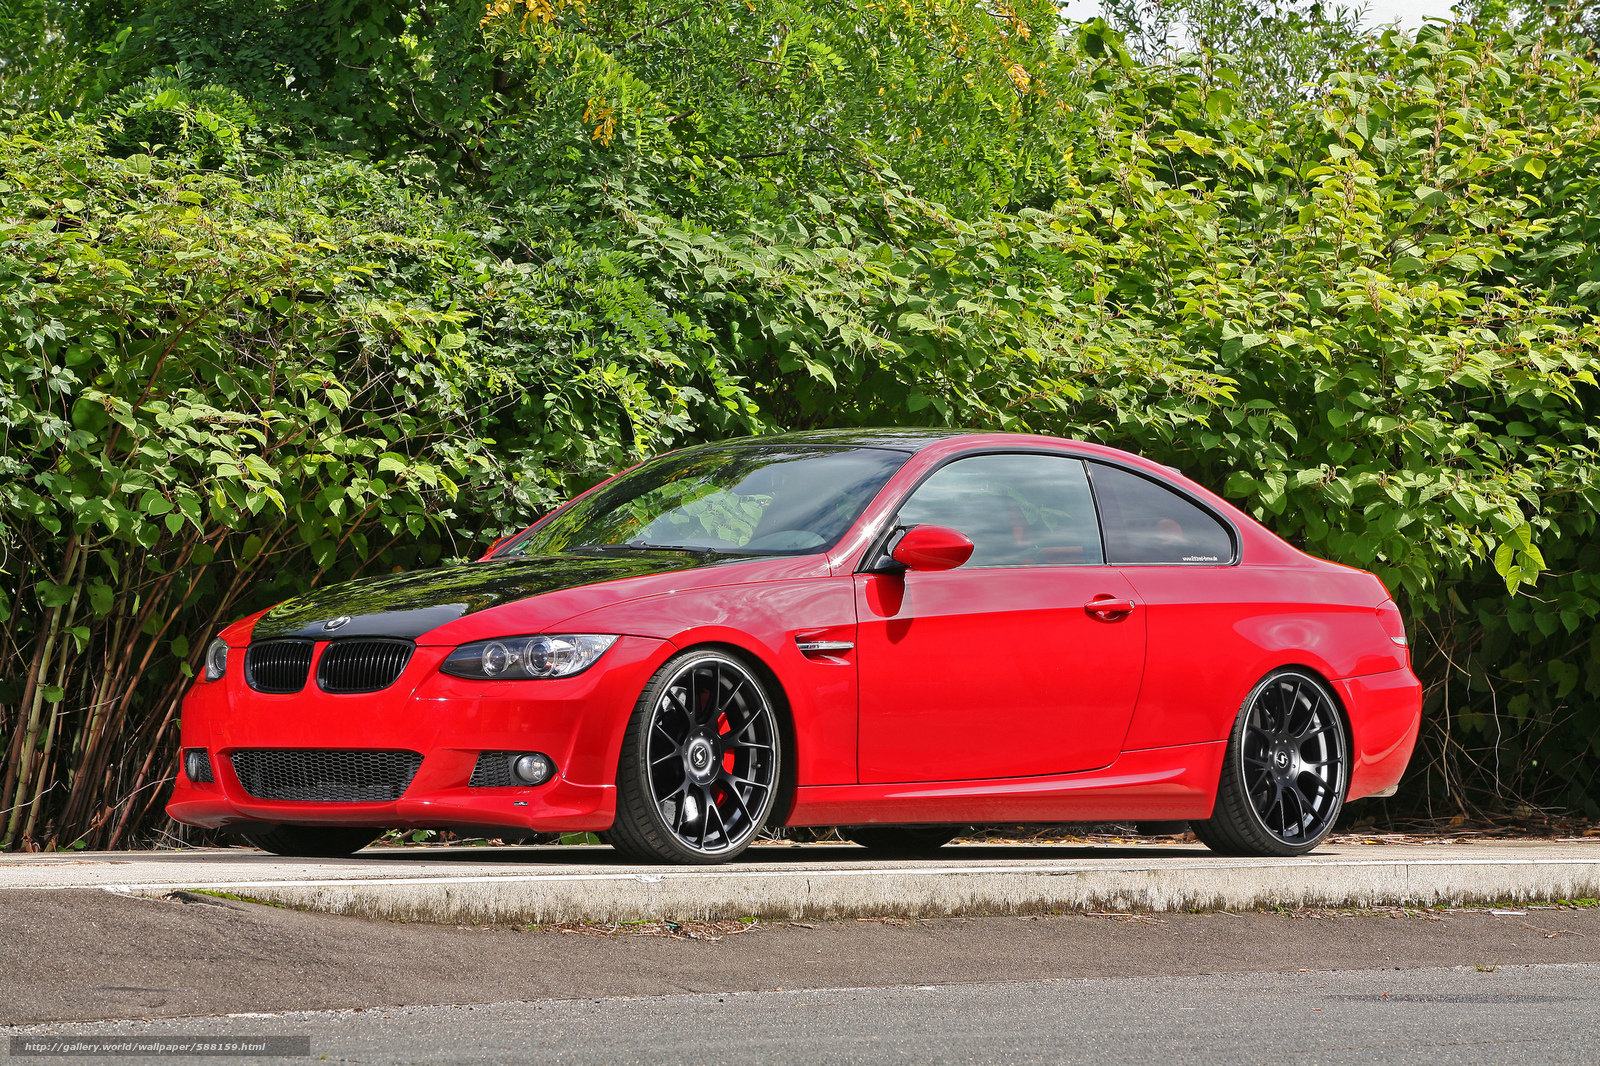 tuning, BMW, BMW, black wheels, red, compartment